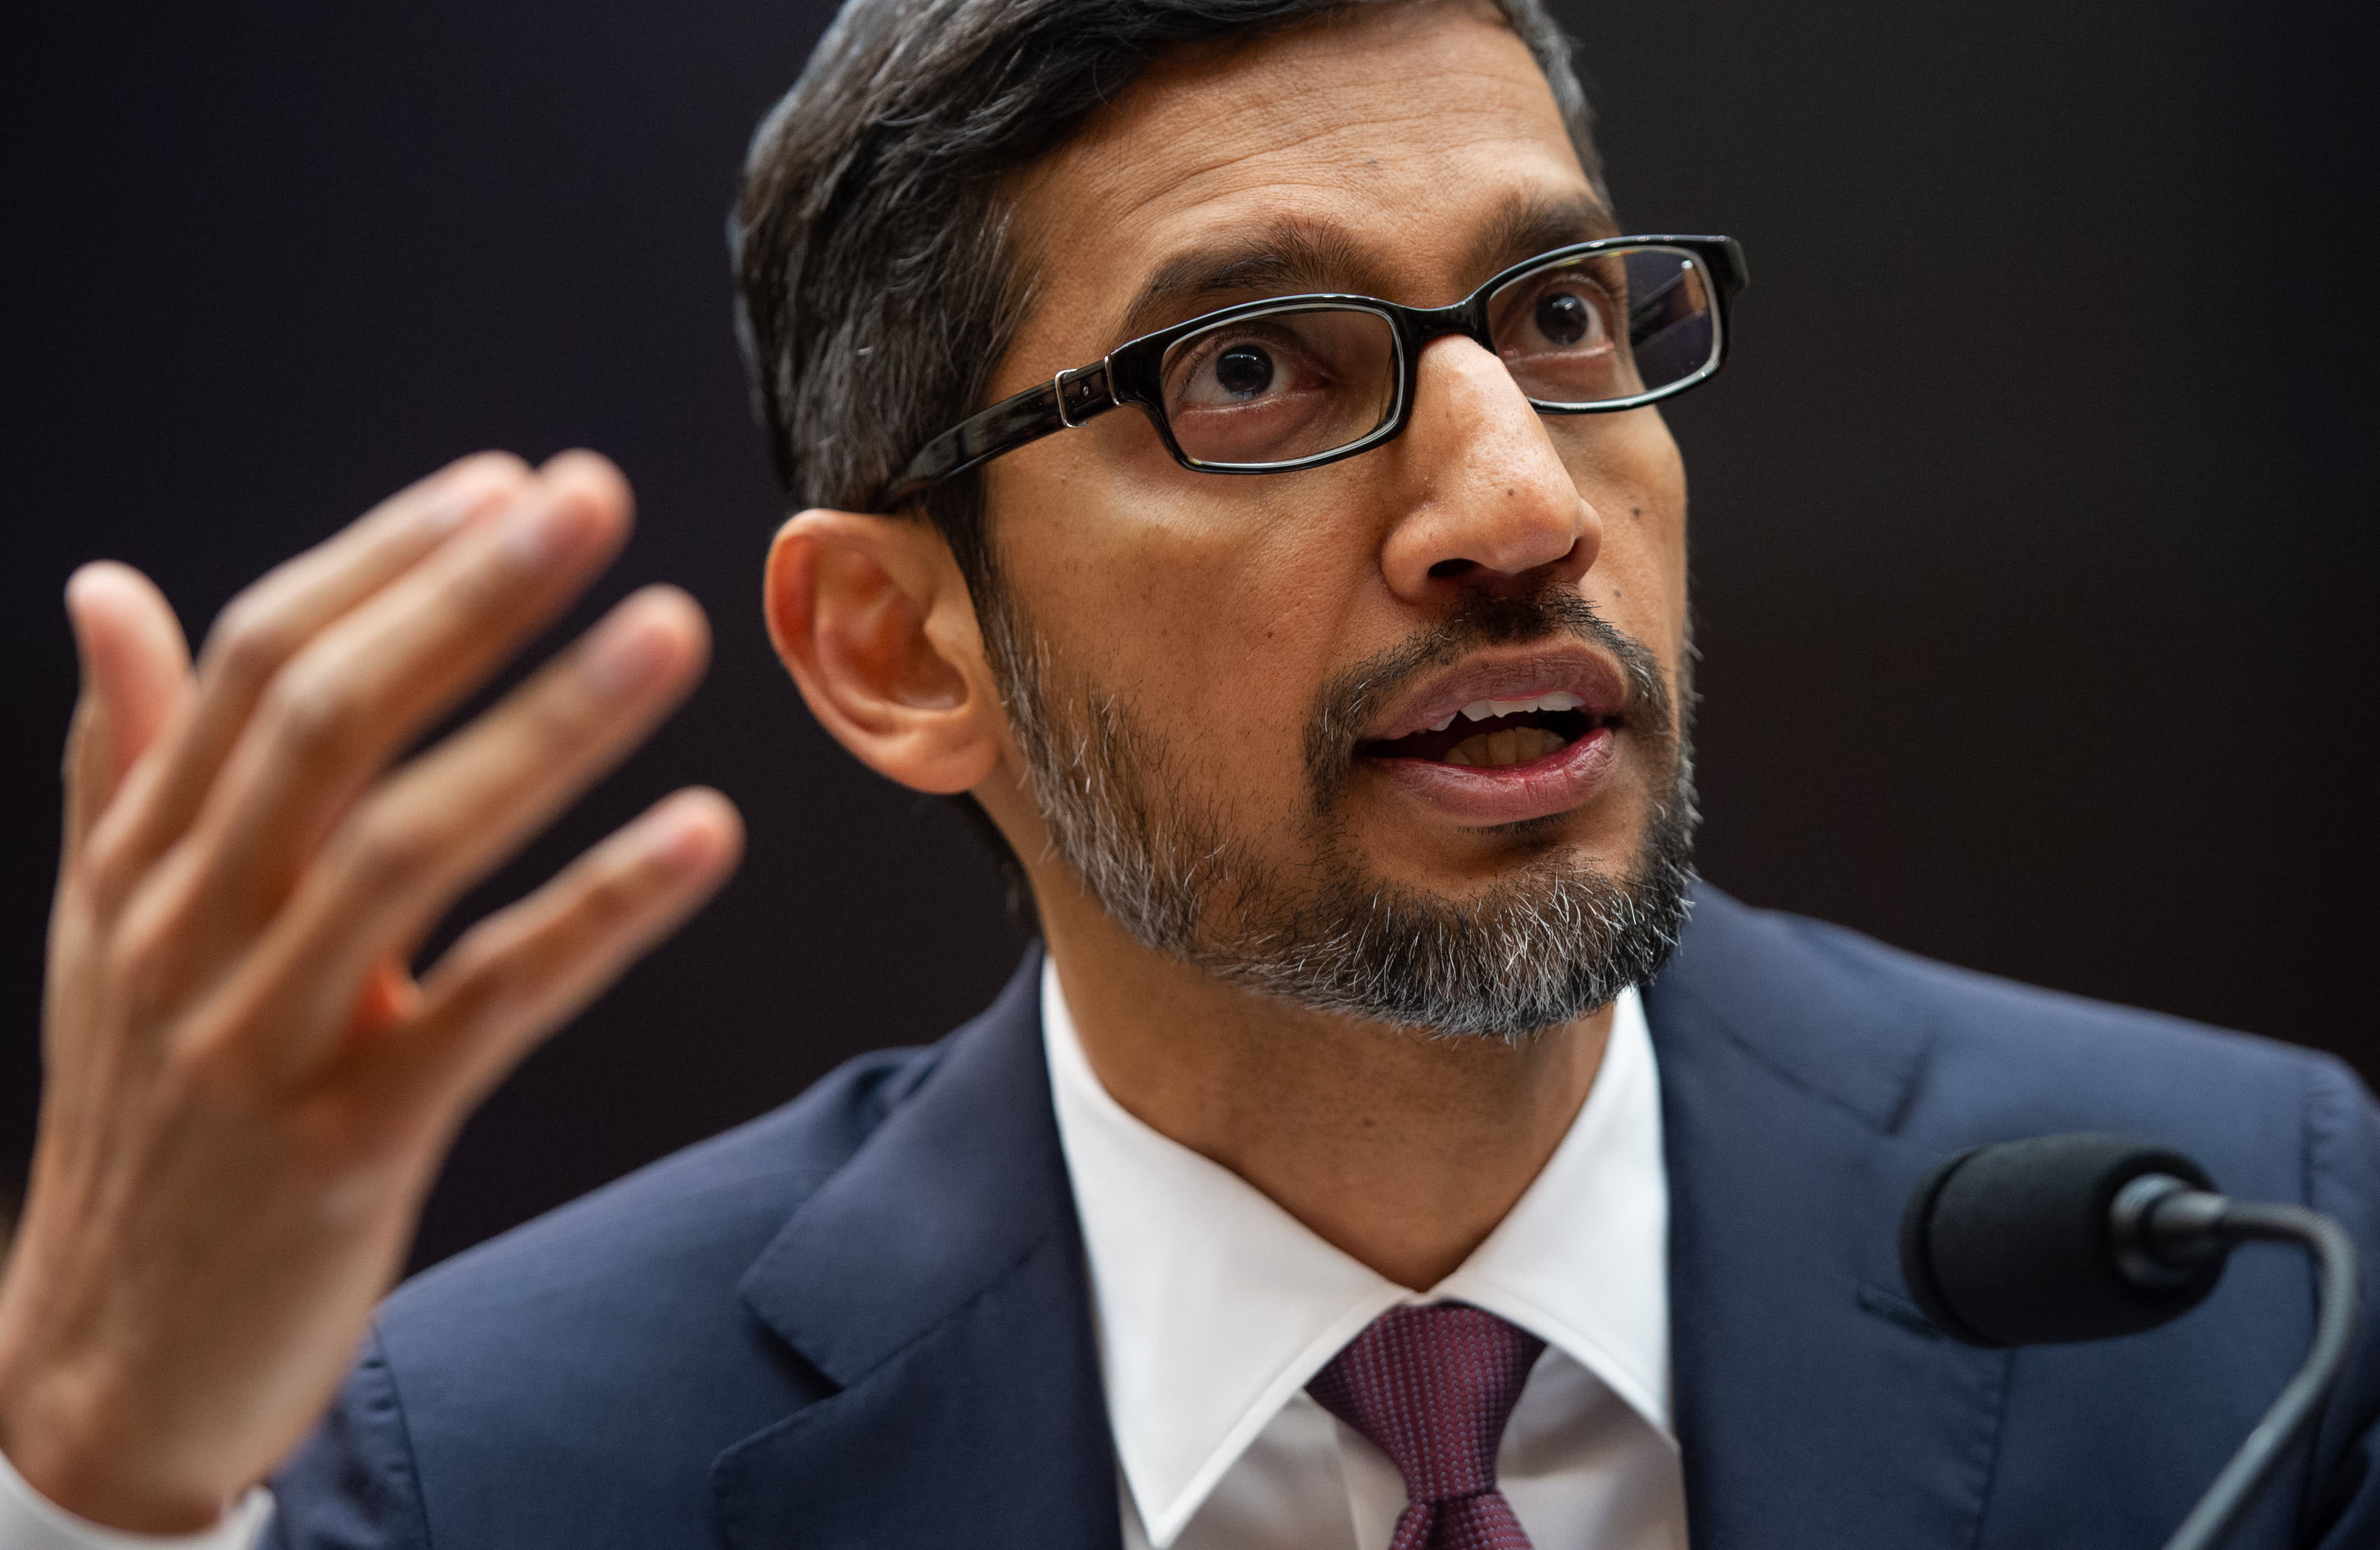 Google CEO takes a jab at Apple's security pitch: 'Privacy cannot be a luxury good'